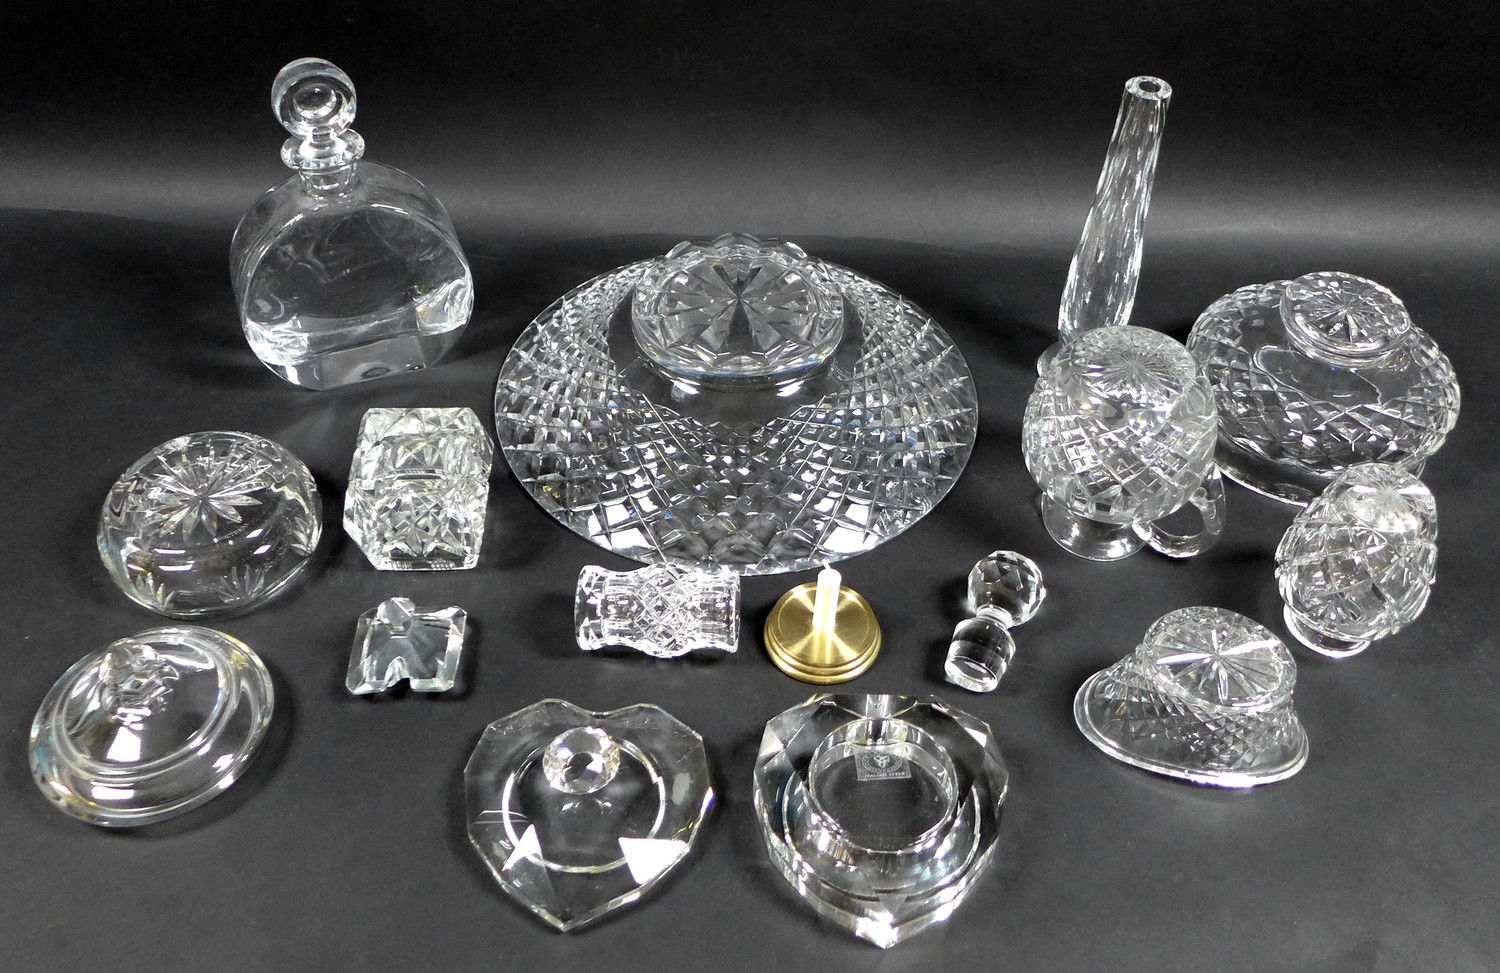 A collection of Waterford Crystal glass wares, including a shallow bowl, 26.5 by 7cm, pedestal bowl, - Image 2 of 12